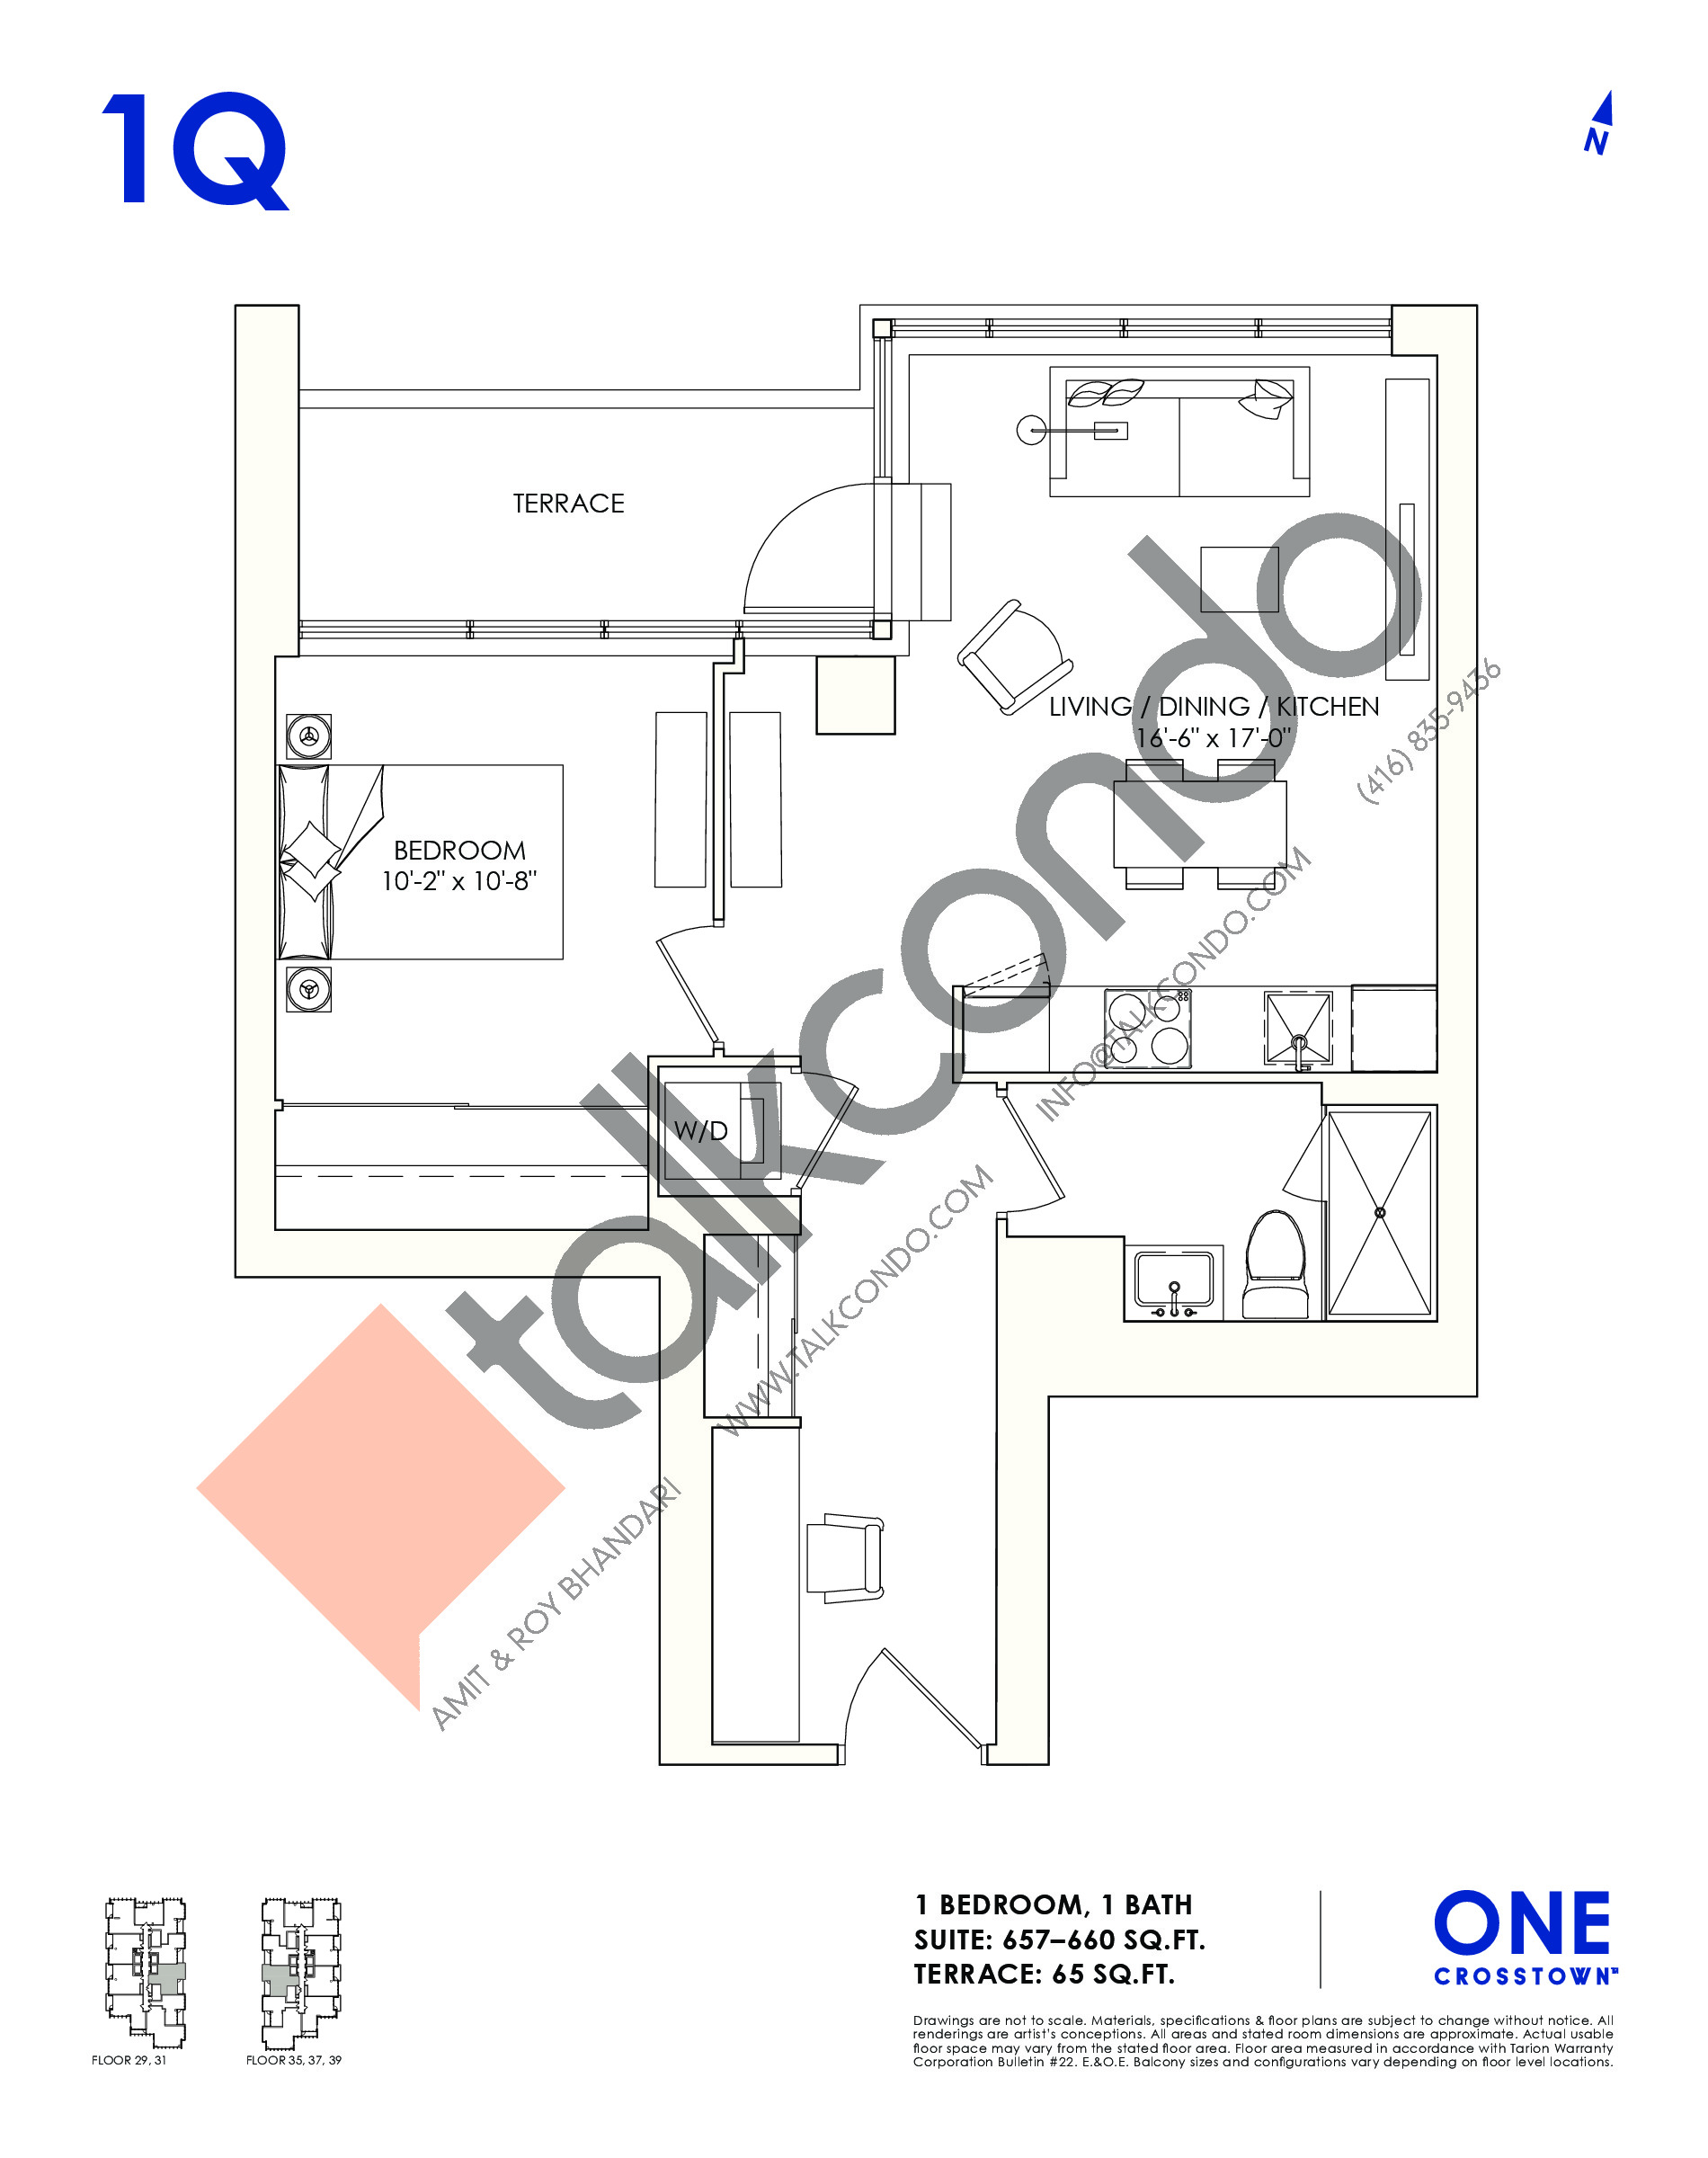 1Q Floor Plan at One Crosstown Condos - 660 sq.ft